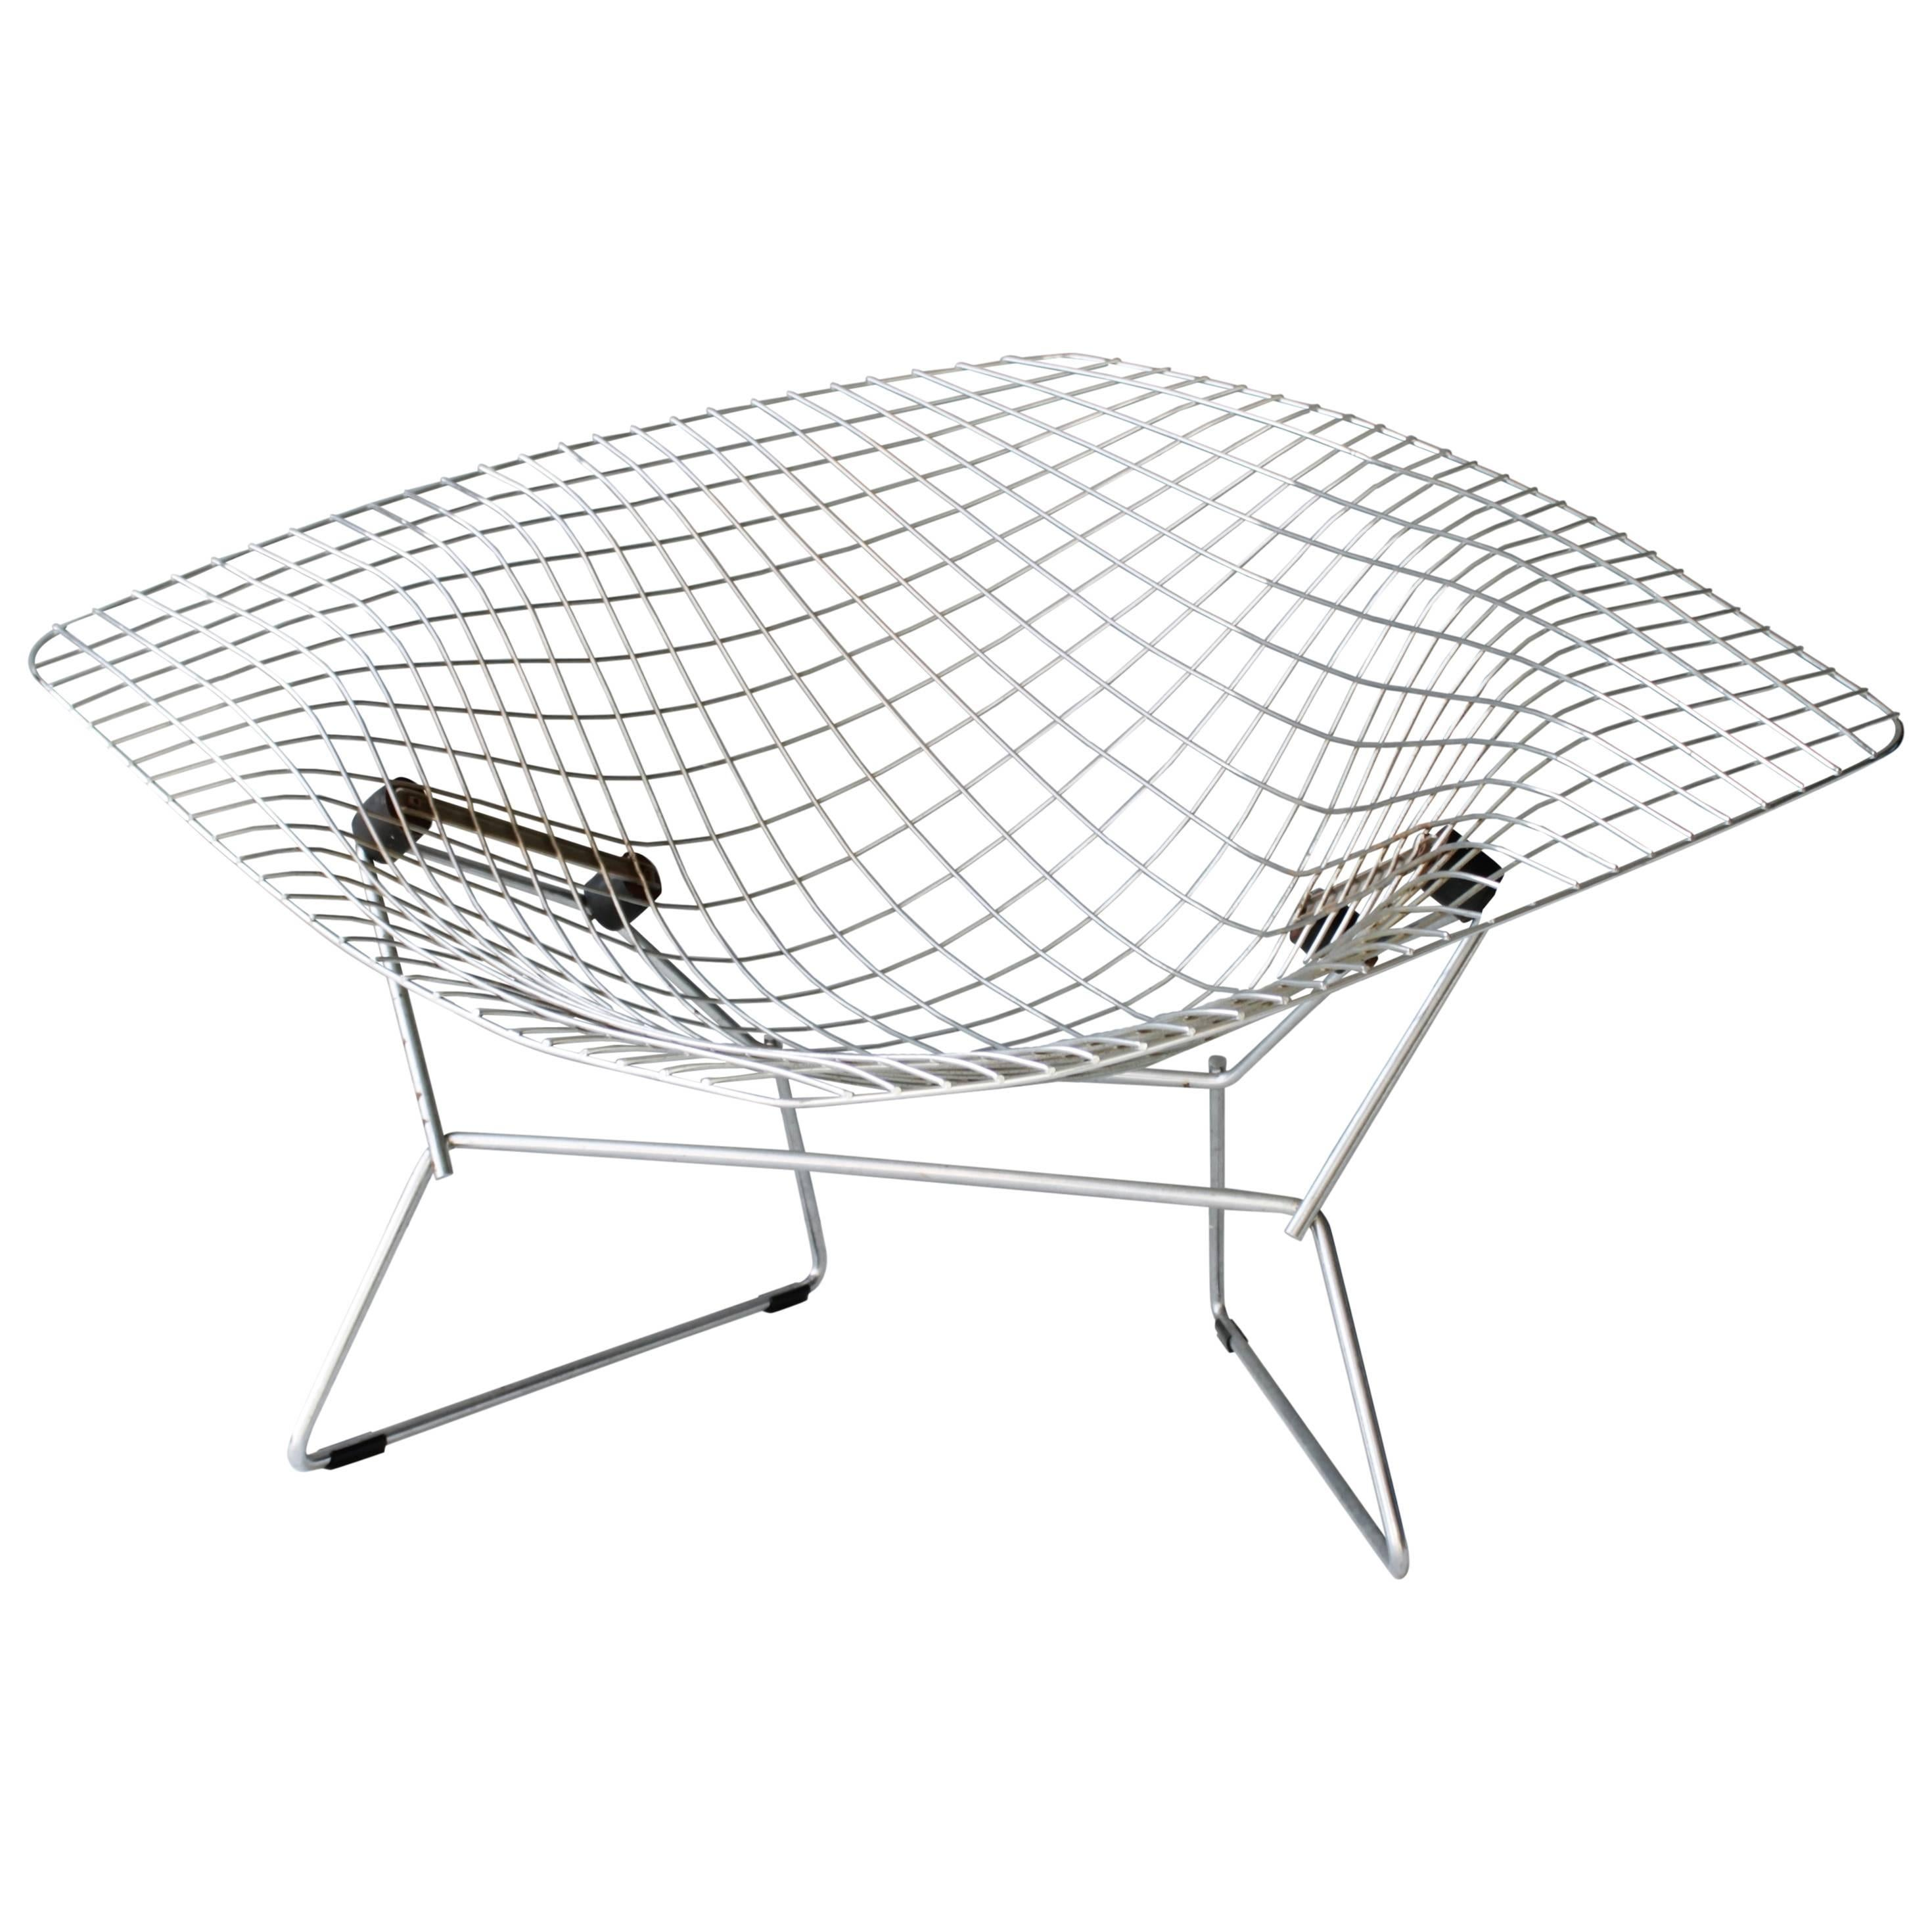 butterfly chair by j e hardoy ferrari for knoll 1970 at 1stdibs 1950s Bedroom Furniture Set